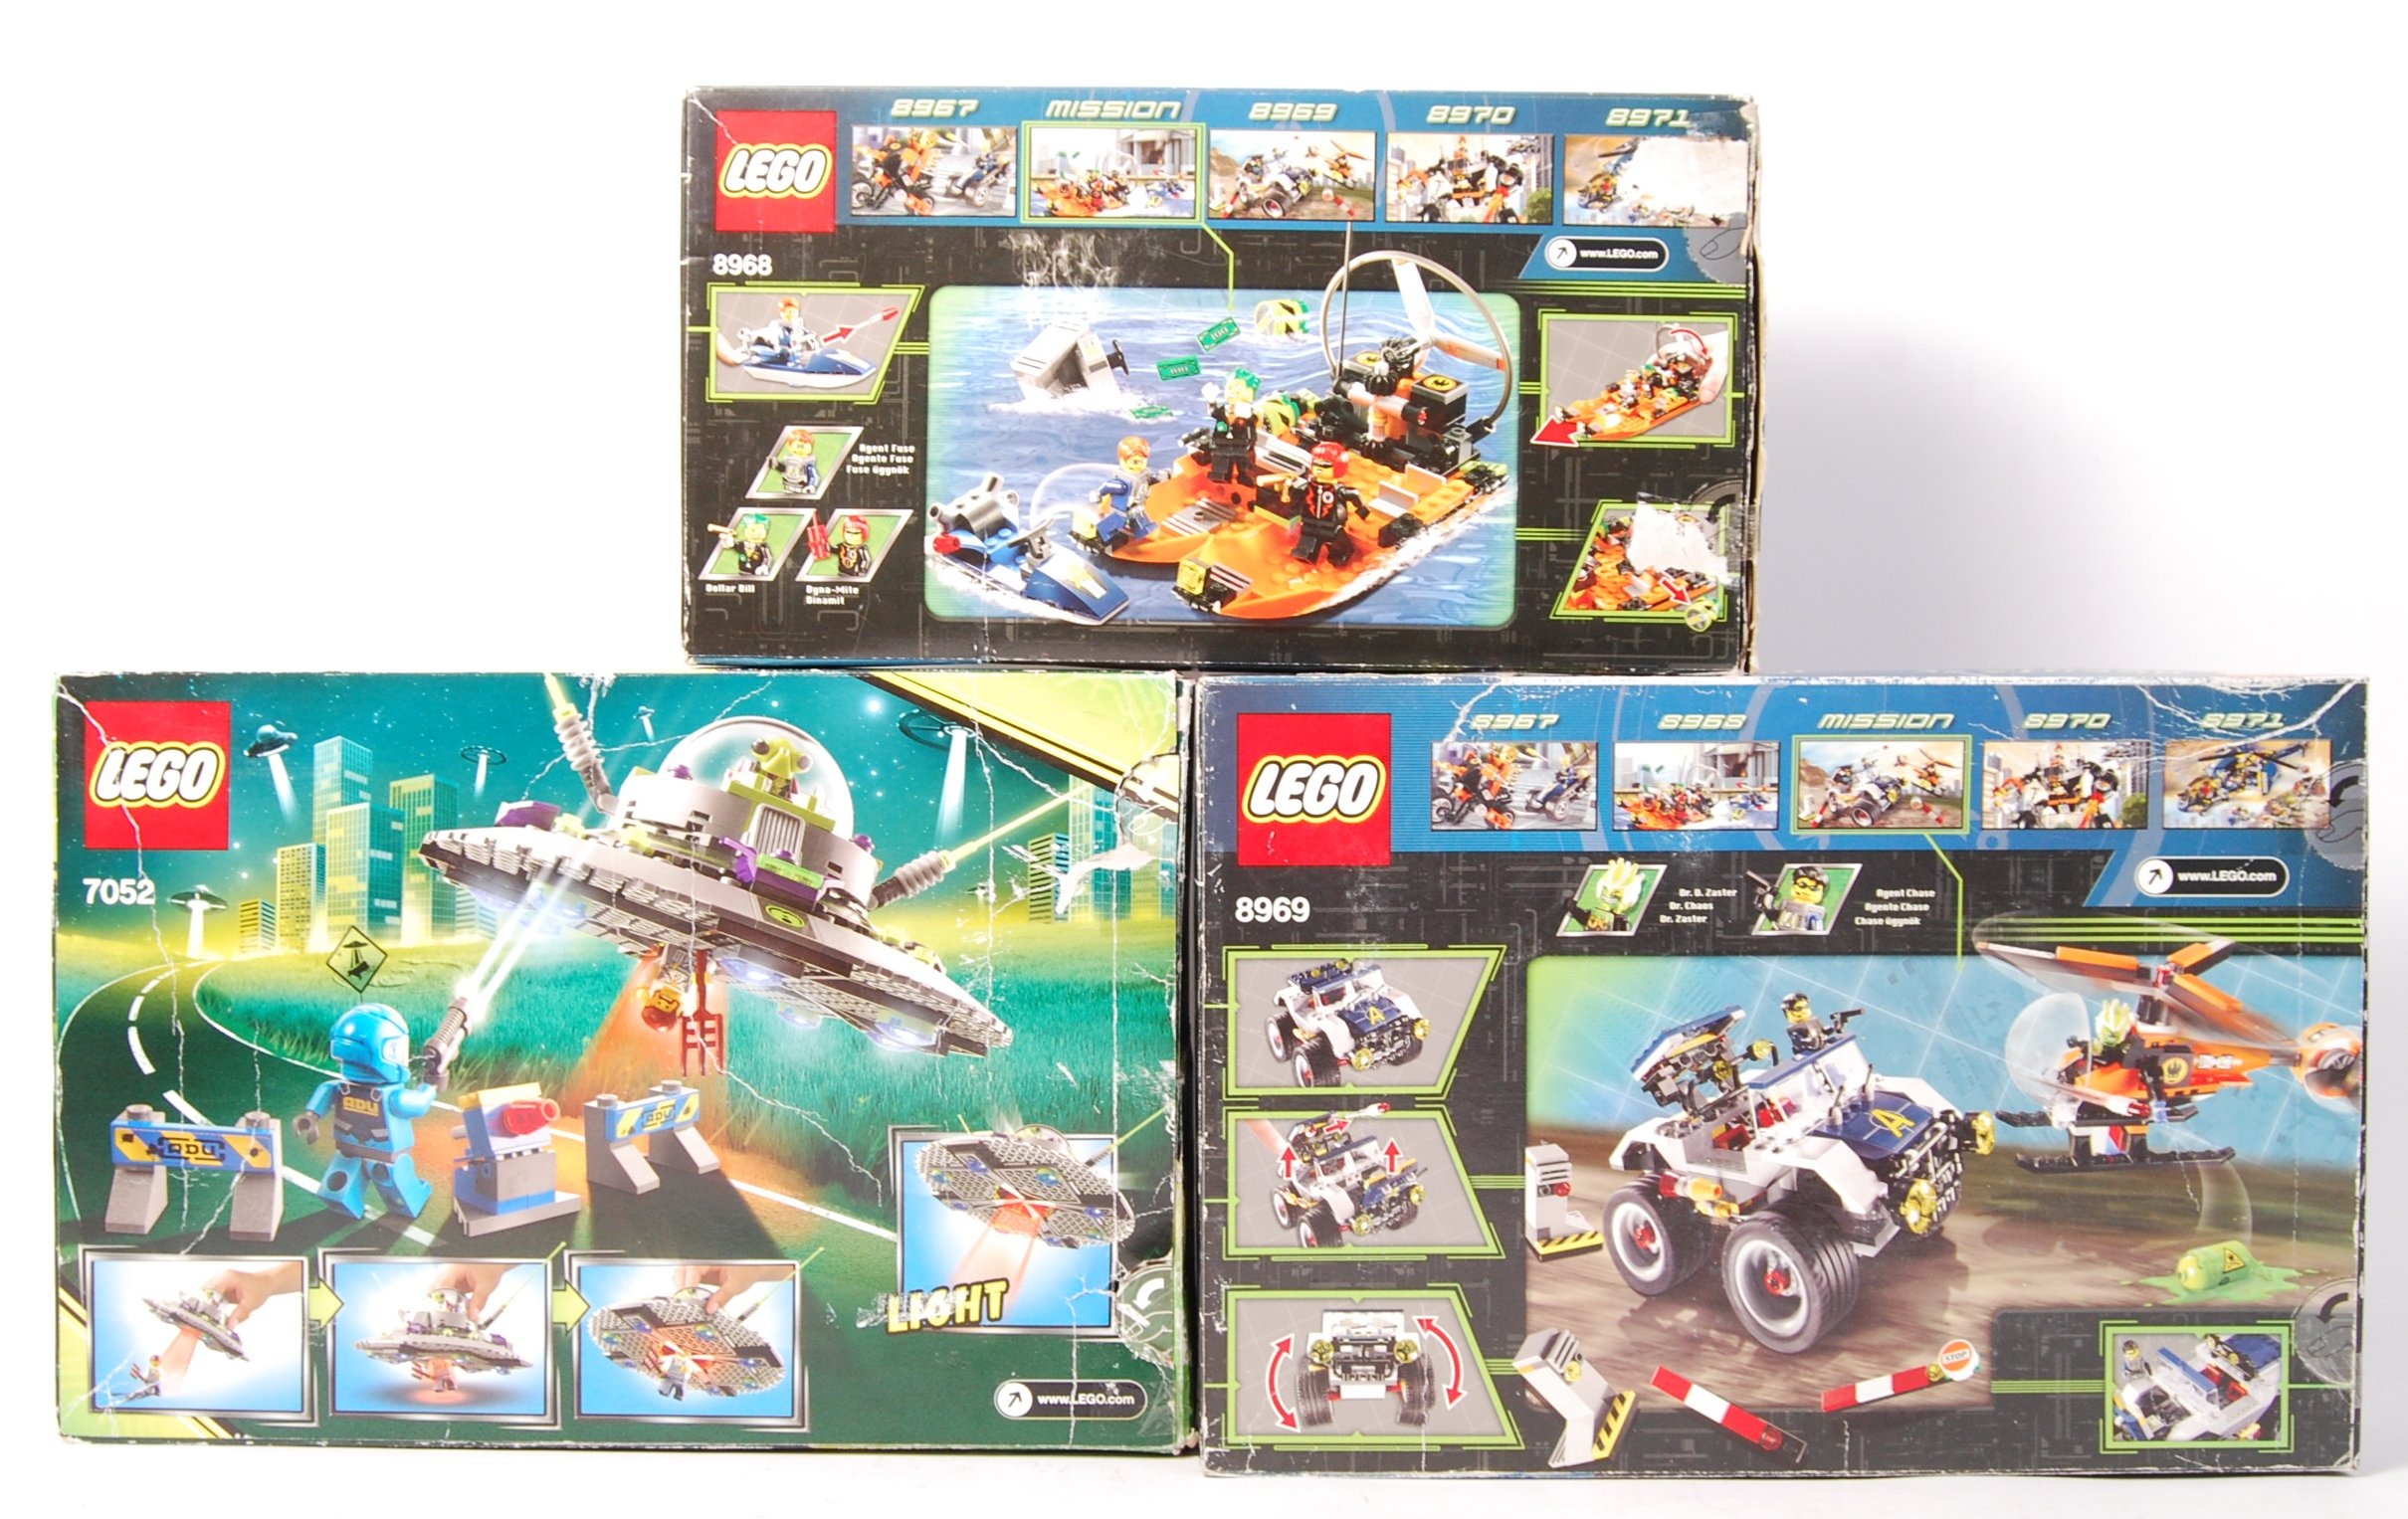 ASSORTED LEGO ' AGENTS ' AND ' ALIEN CONQUEST ' BO - Image 2 of 2